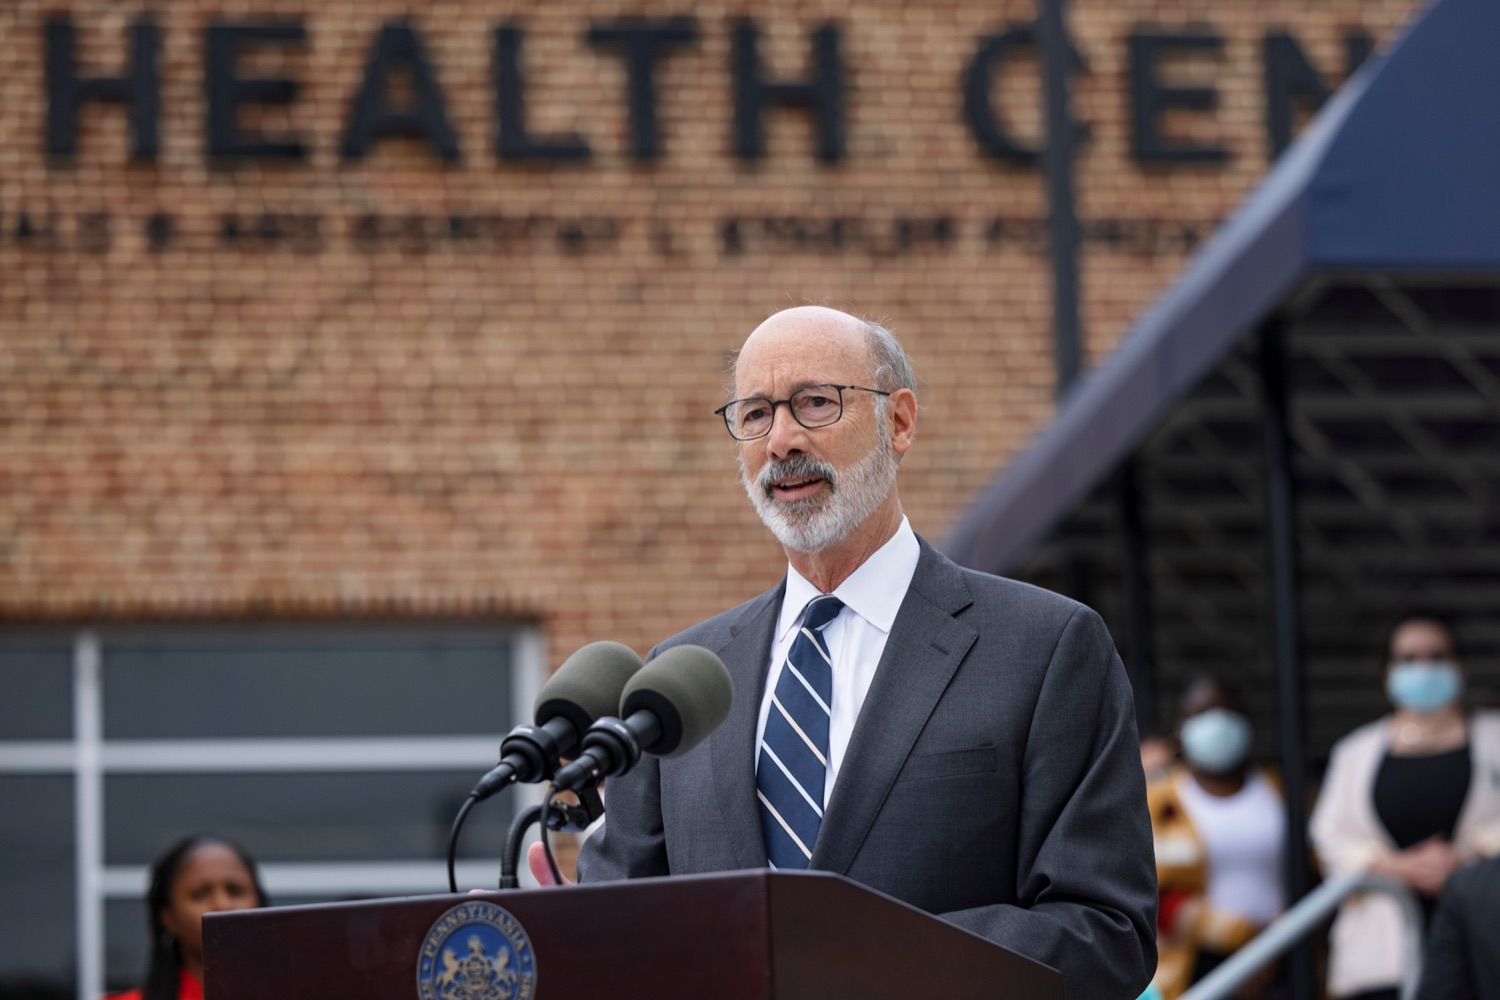 """<a href=""""https://filesource.wostreaming.net/commonwealthofpa/photo/20119_GOV_Vaccines_NK_001.jpg"""" target=""""_blank"""">⇣Download Photo<br></a>PA Governor Tom Wolf speaks during a press conference, which encouraged eligible Pennsylvanians who are not yet vaccinated to take advantage of their upcoming community COVID-19 vaccine clinic in partnership with the Zeta Theta Lambda Chapter of Alpha Phi Alpha fraternity, outside Hamilton Health Center in Harrisburg on Wednesday, October 6, 2021. The clinic will run on Saturday, October 9, COVID-19 vaccinations will be offered from 10am  2pm at Hamilton Health Center, 100 S. 17th St., Harrisburg, PA 17104."""